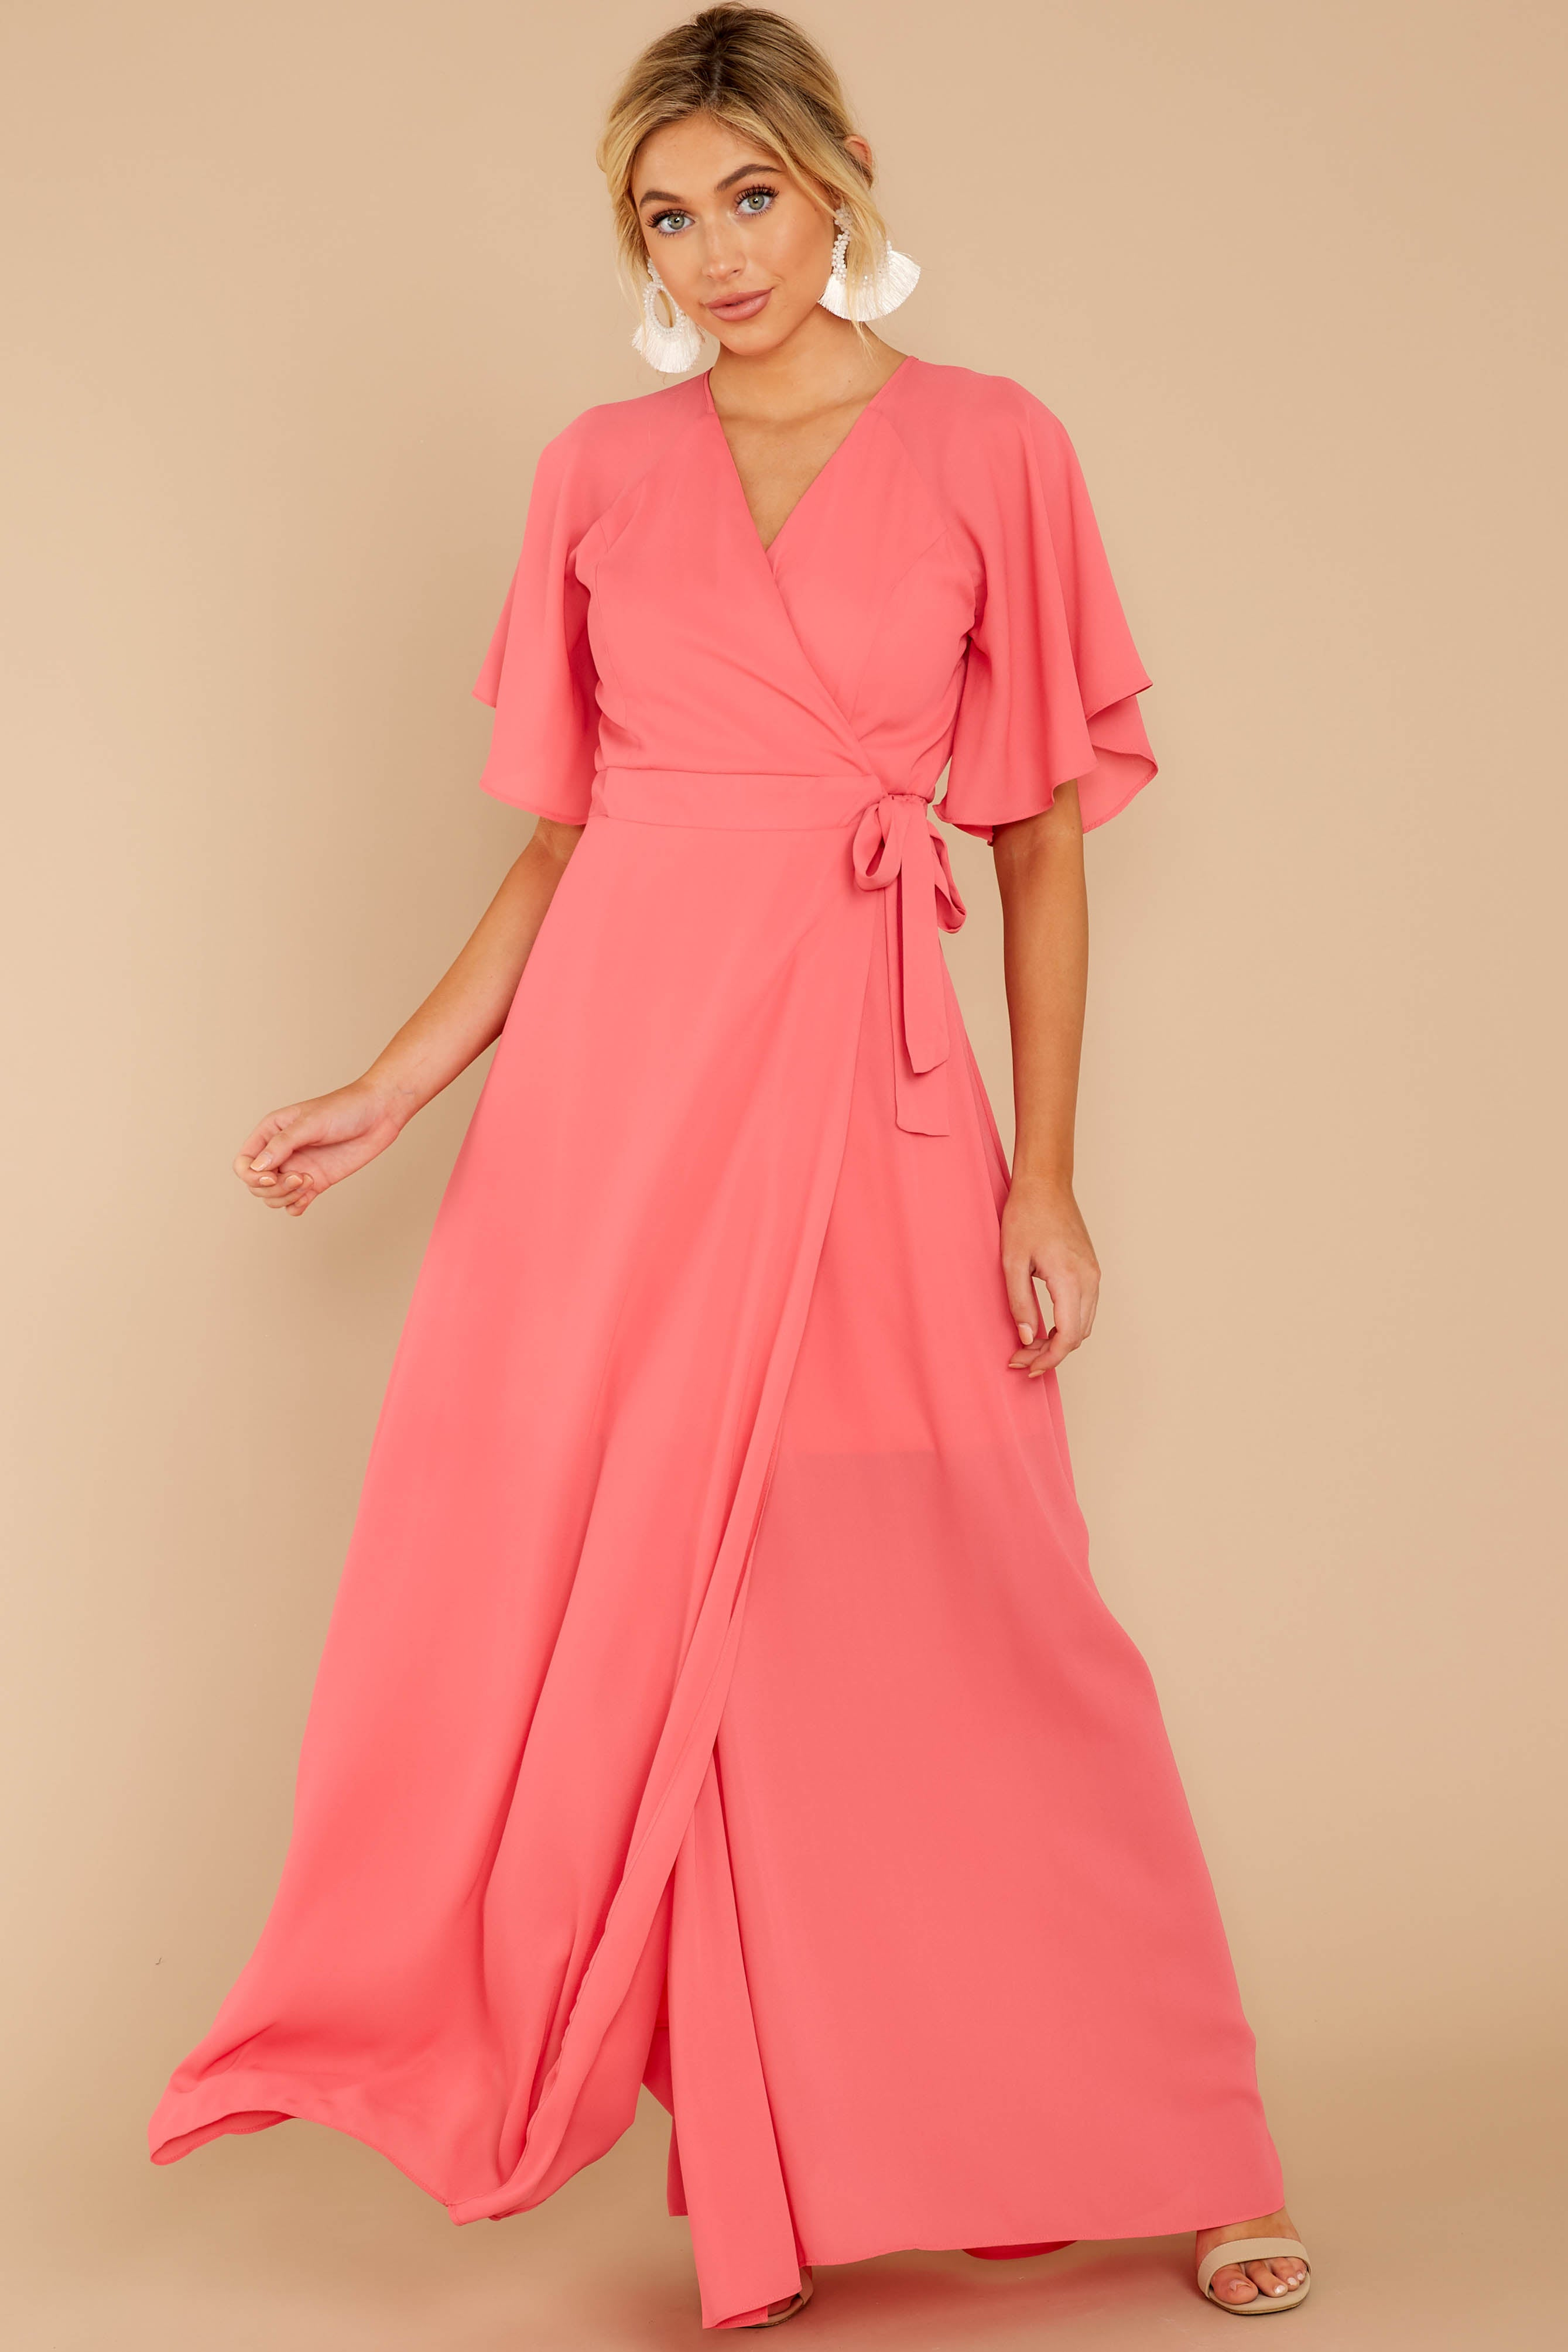 5 Wrapped In Elegance Flamingo Pink Maxi Dress at reddress.com